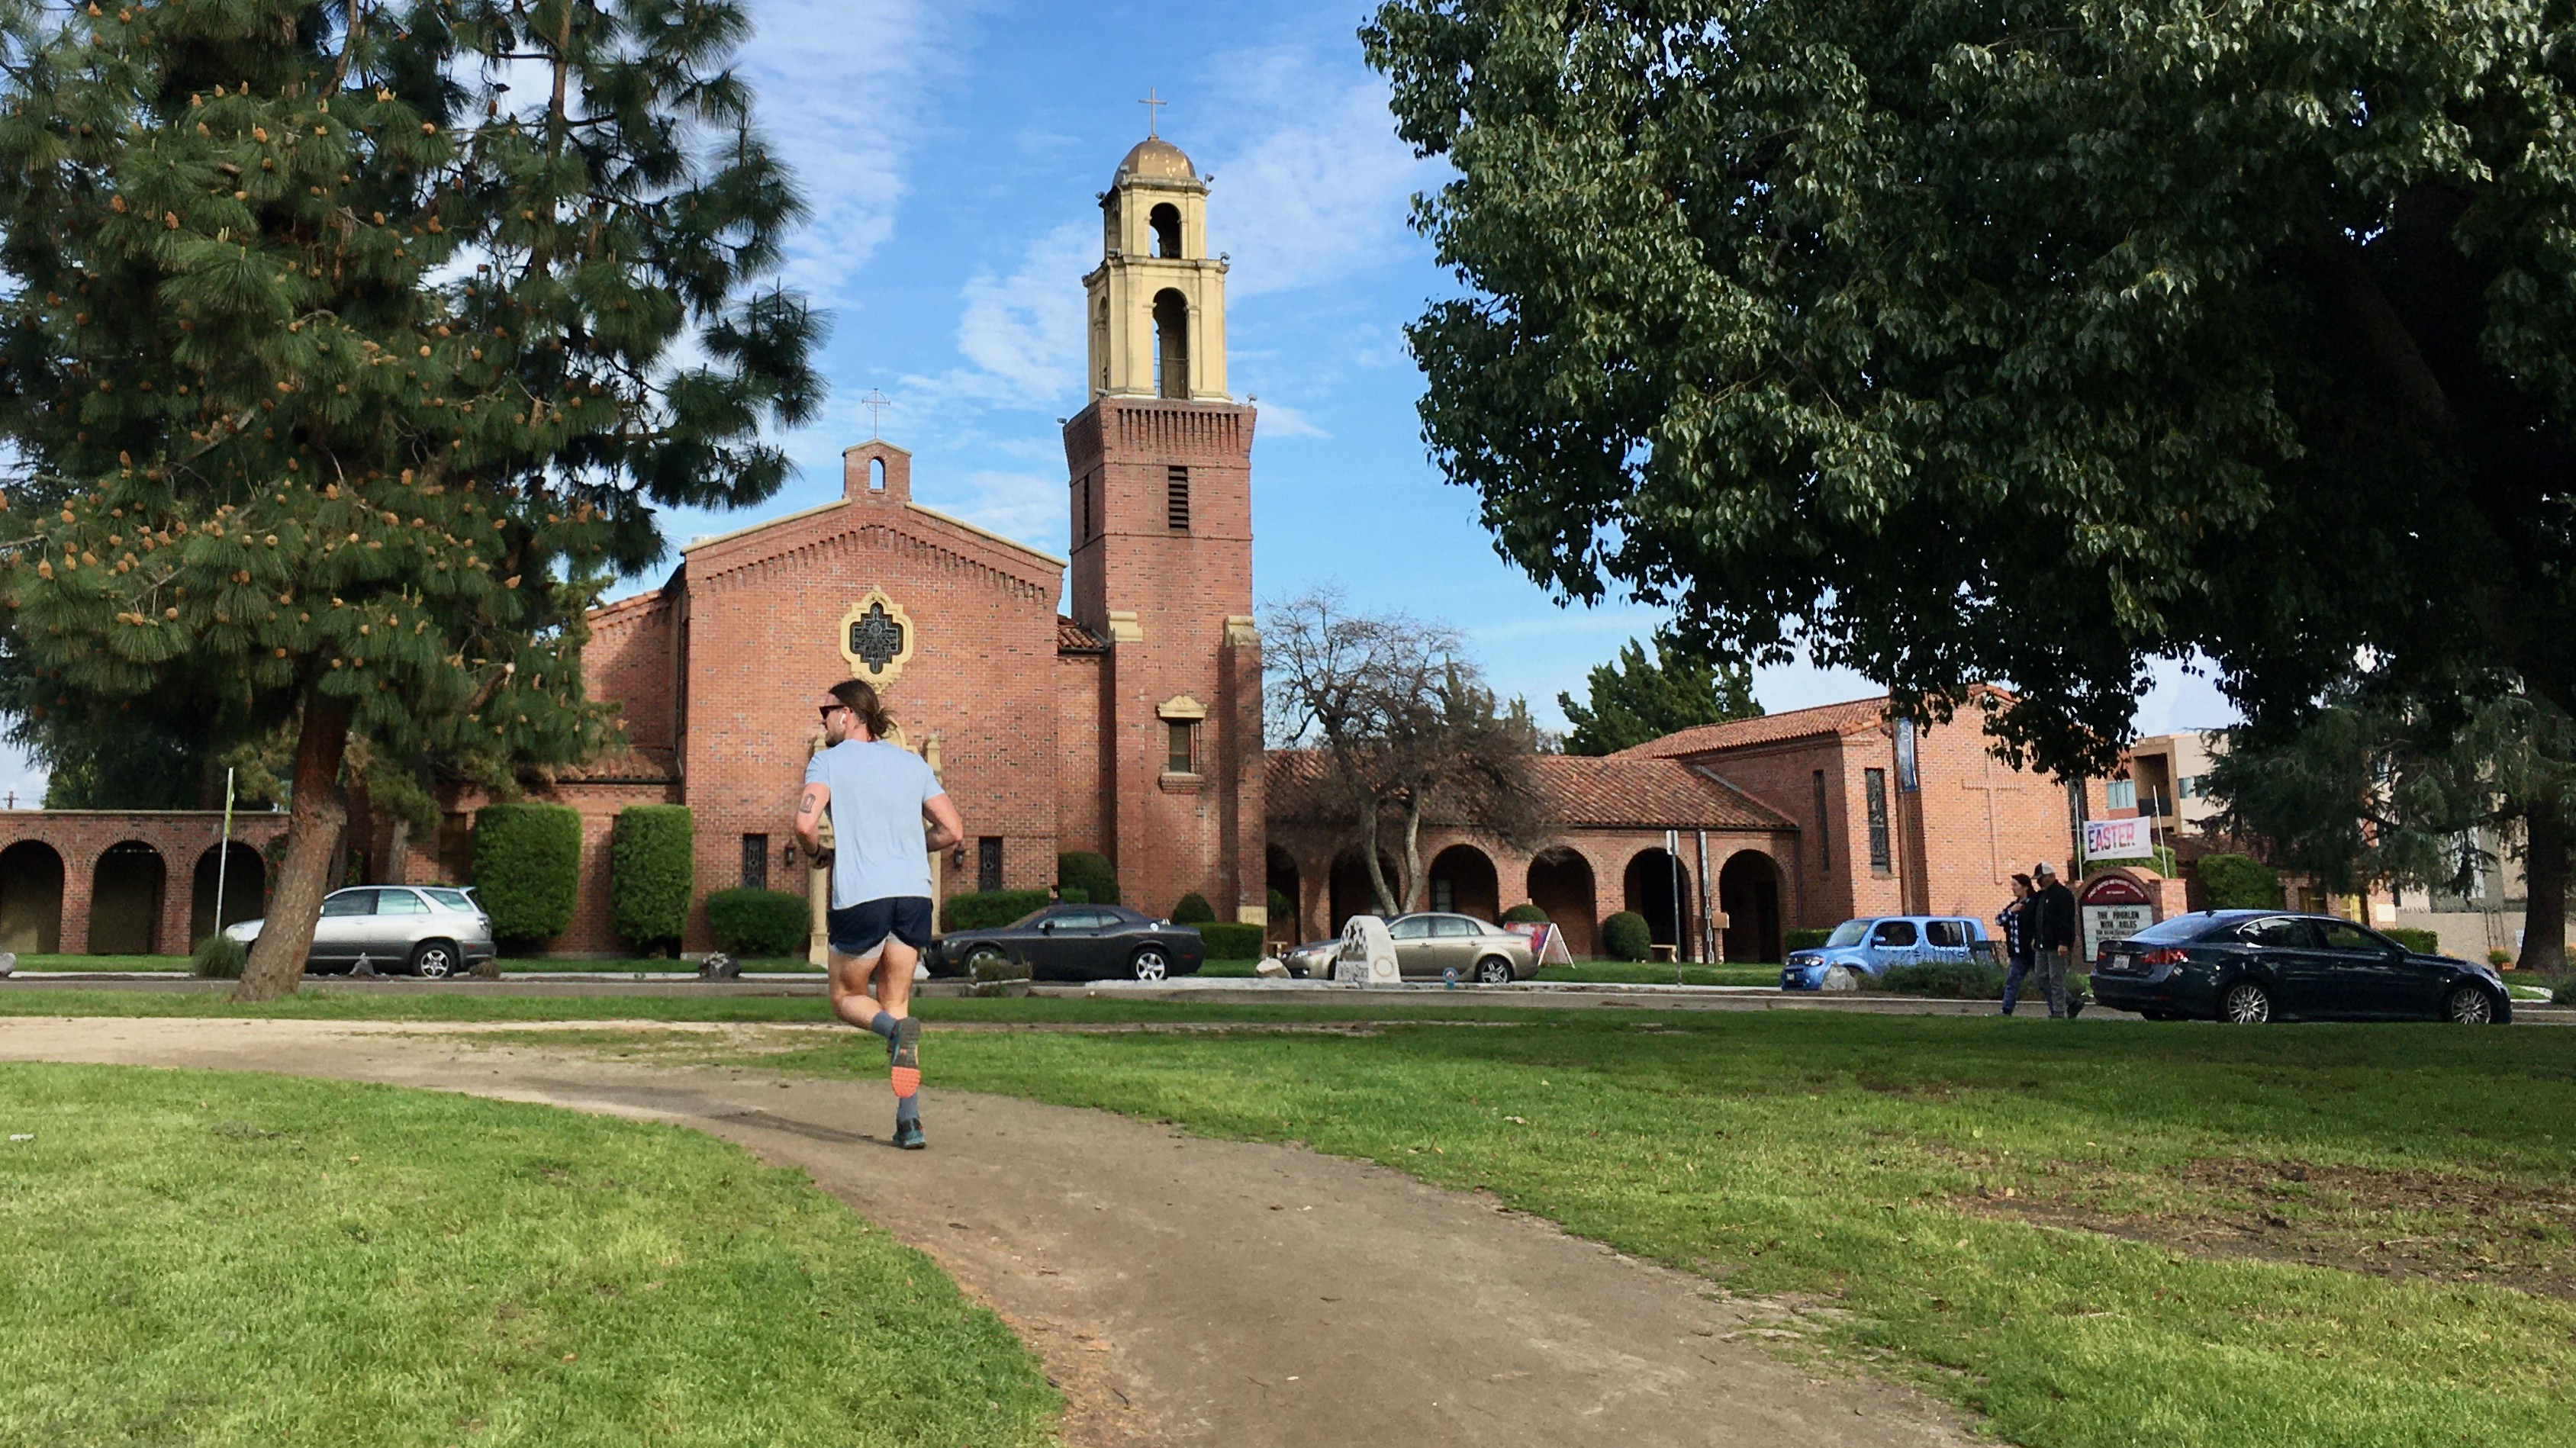 A runner turns a corner on a dirt track cutting through green lawn, in the shade of some trees